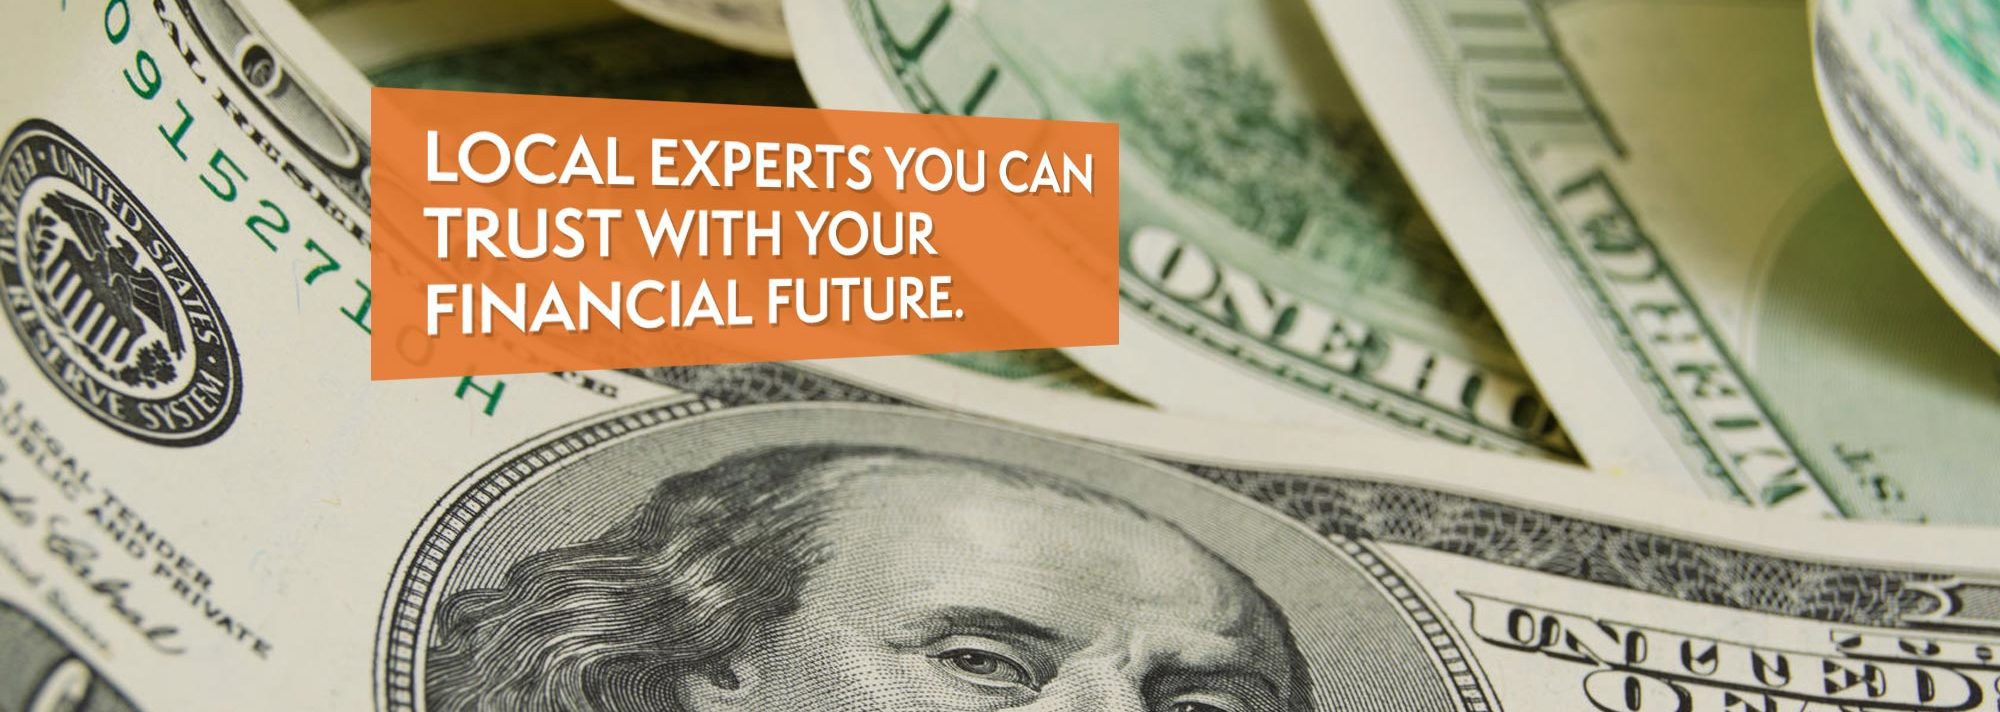 Local Experts You Can Trust With You Financial Future